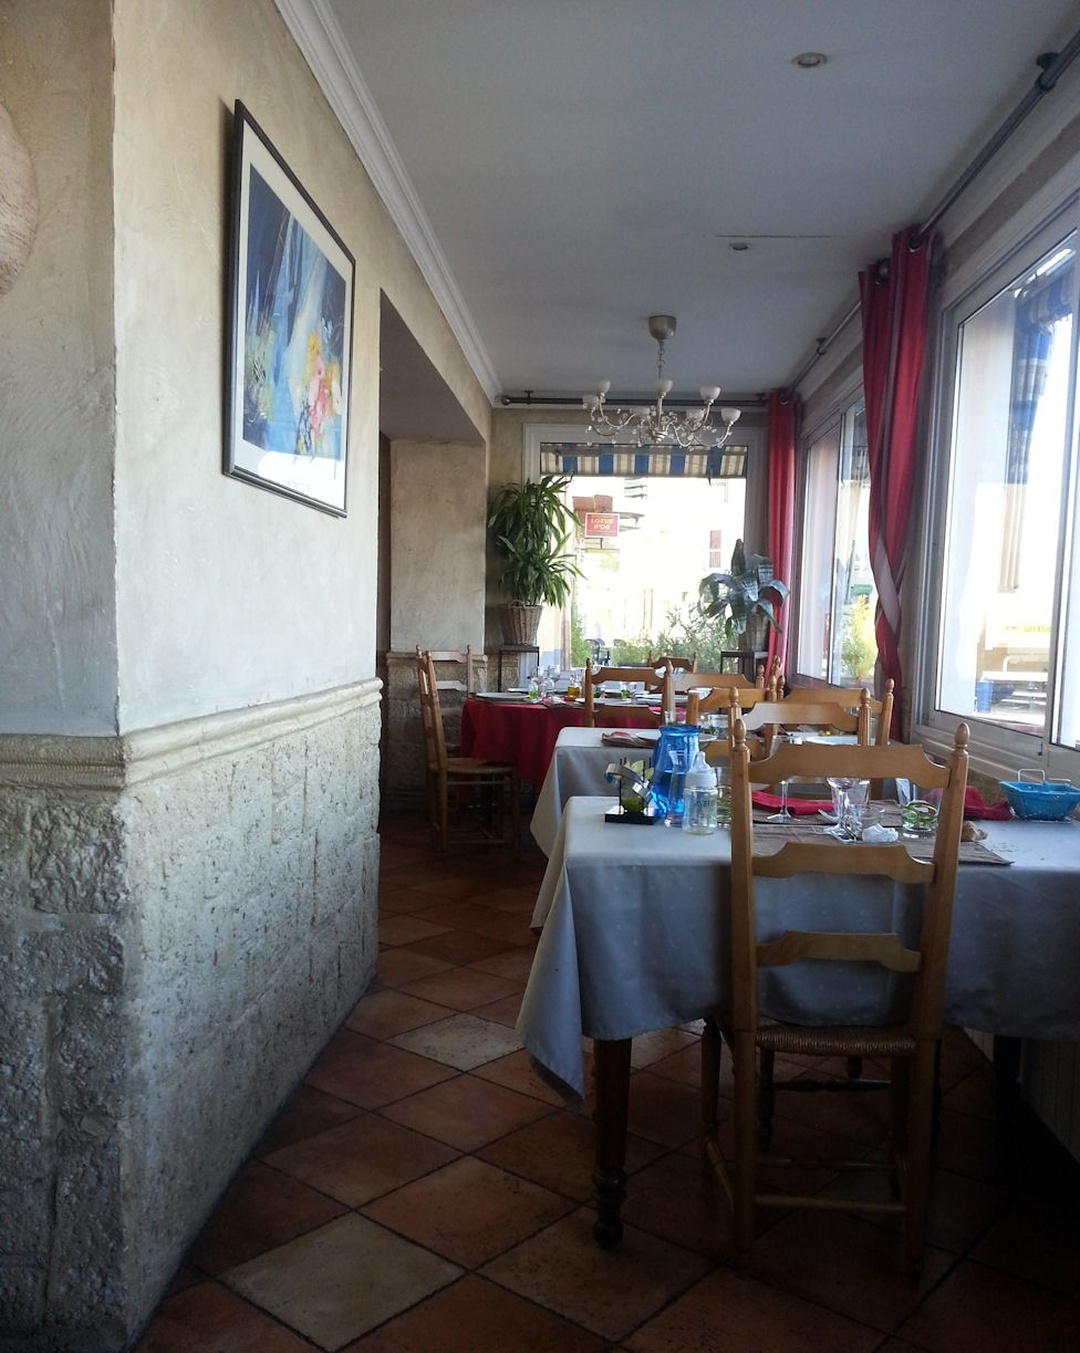 Photo du 5 février 2016 18:55, Restaurant Pascal, 3 Quai Lucien Toulmond, 13500 Martigues, France